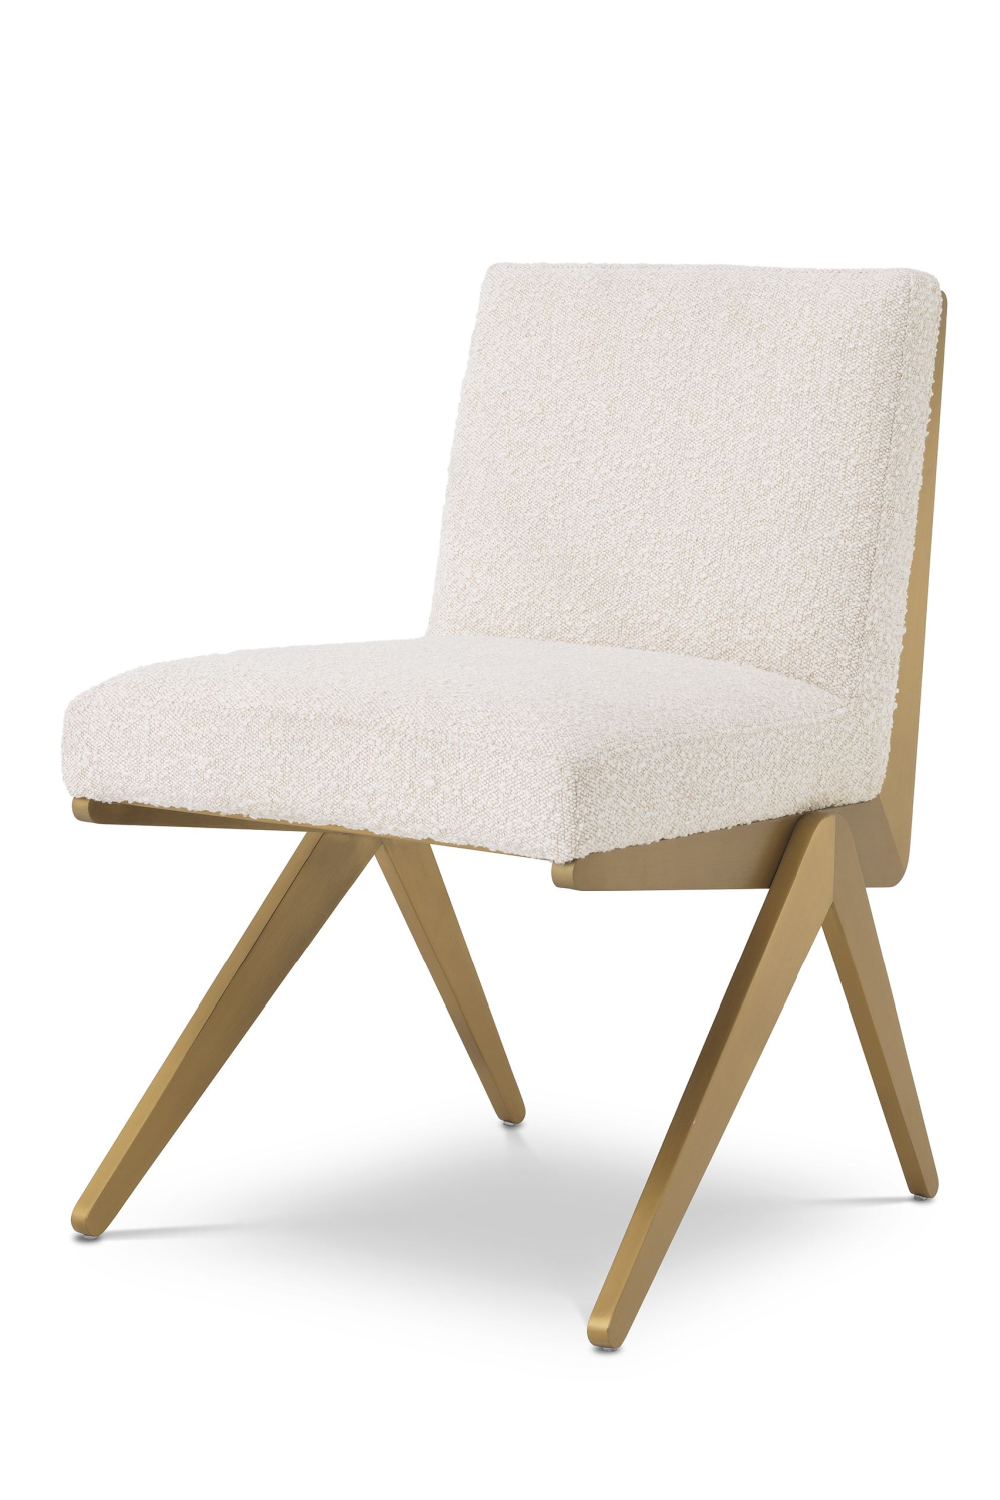 Boucle Cream Brass Dining Chair | Eichholtz Fico | #1 Eichholtz Online Retailer